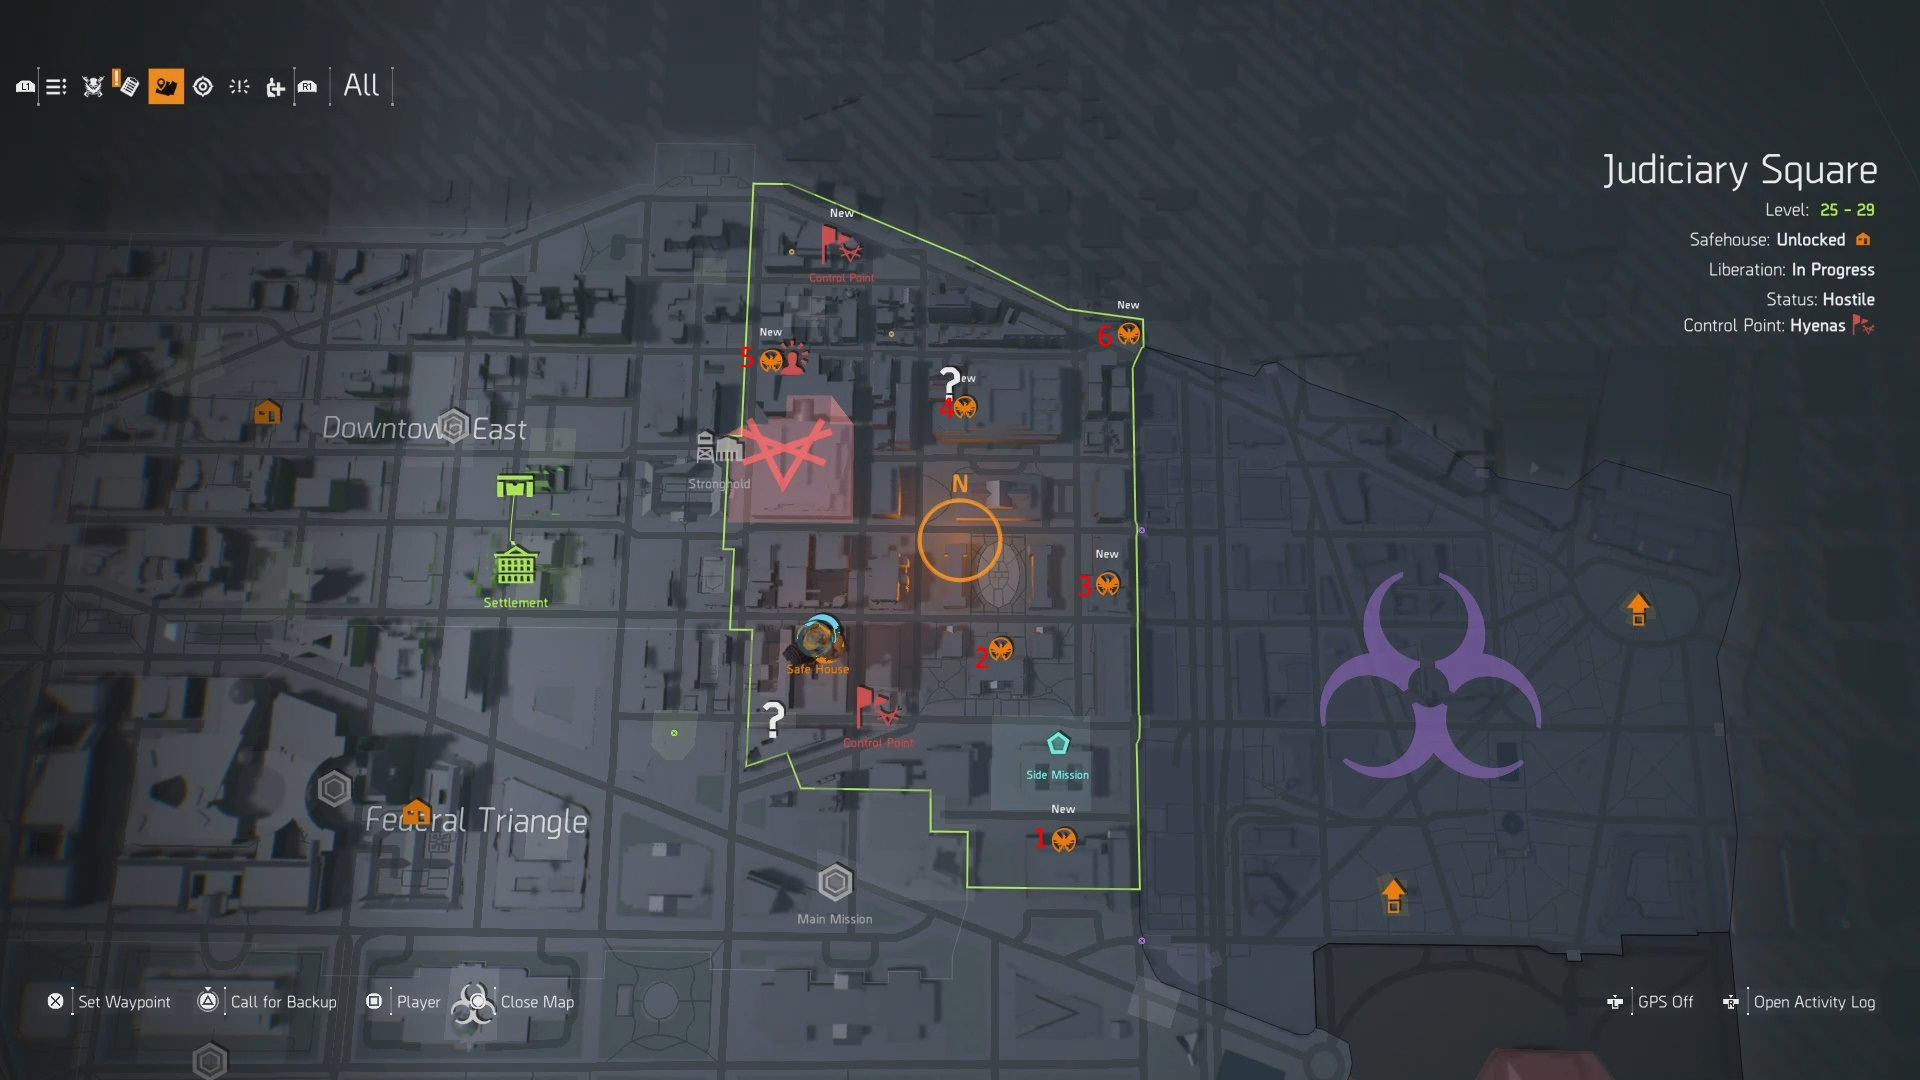 The Division 2 Judiciary Square SHD Tech Cache Locations